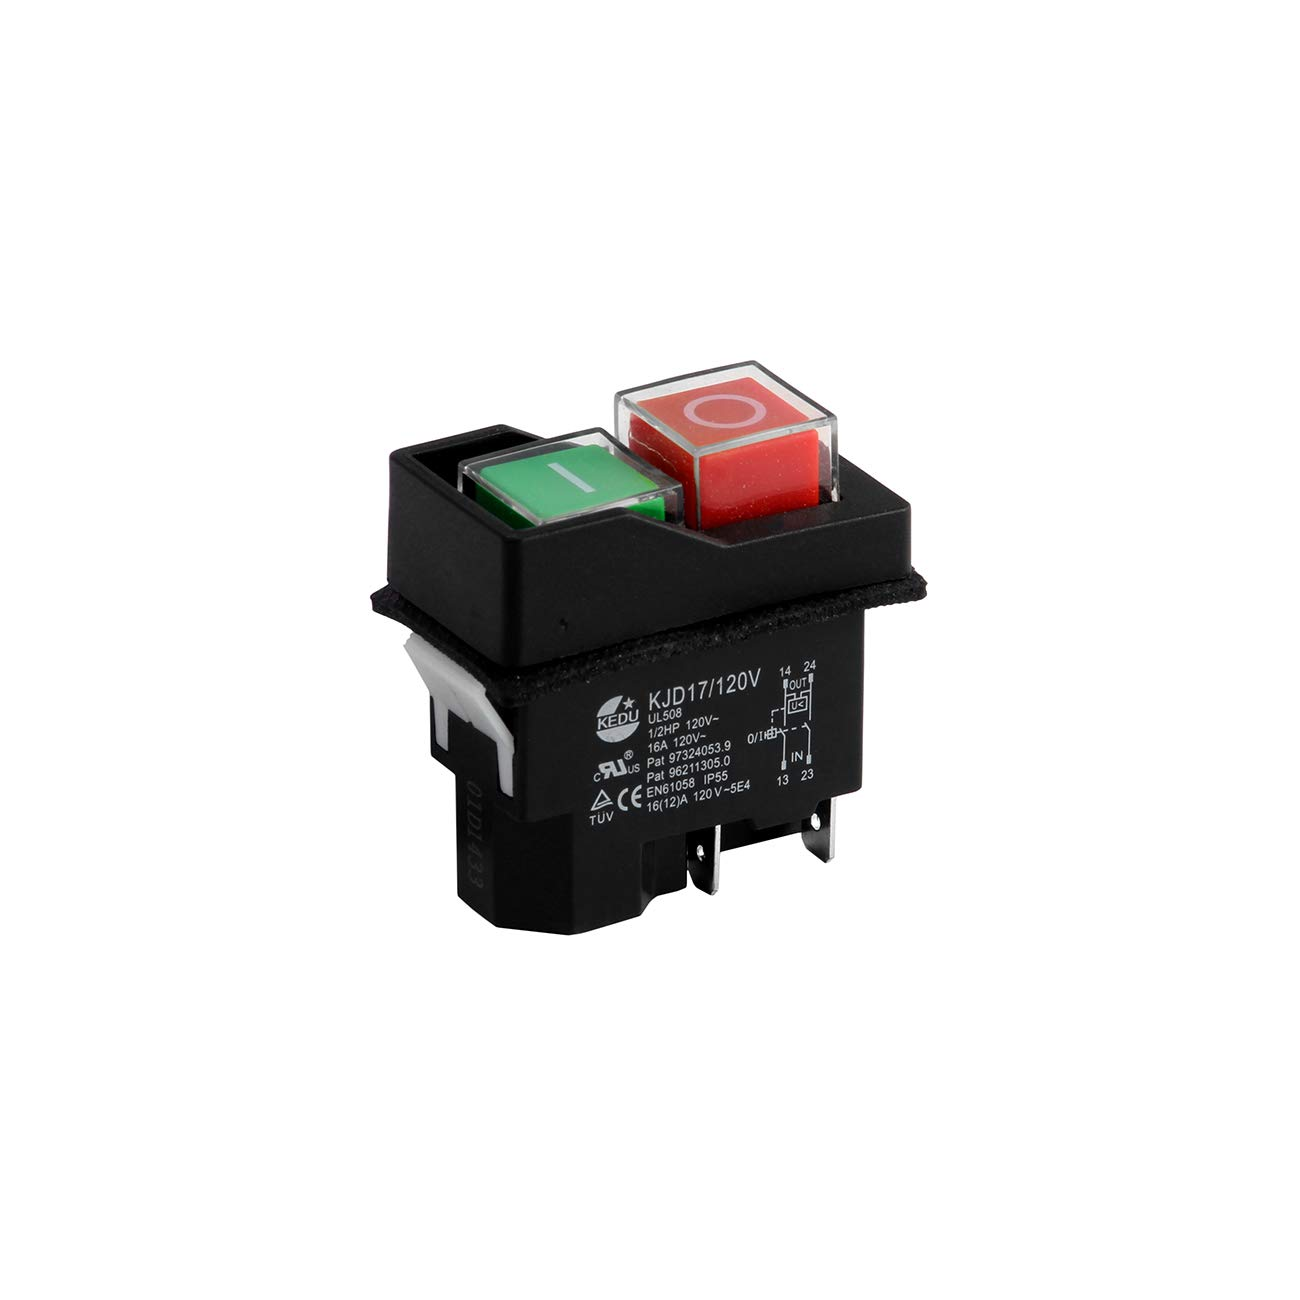 ALFA International MC-12-39 On/Off Switch for MC-12 Meat Grinders